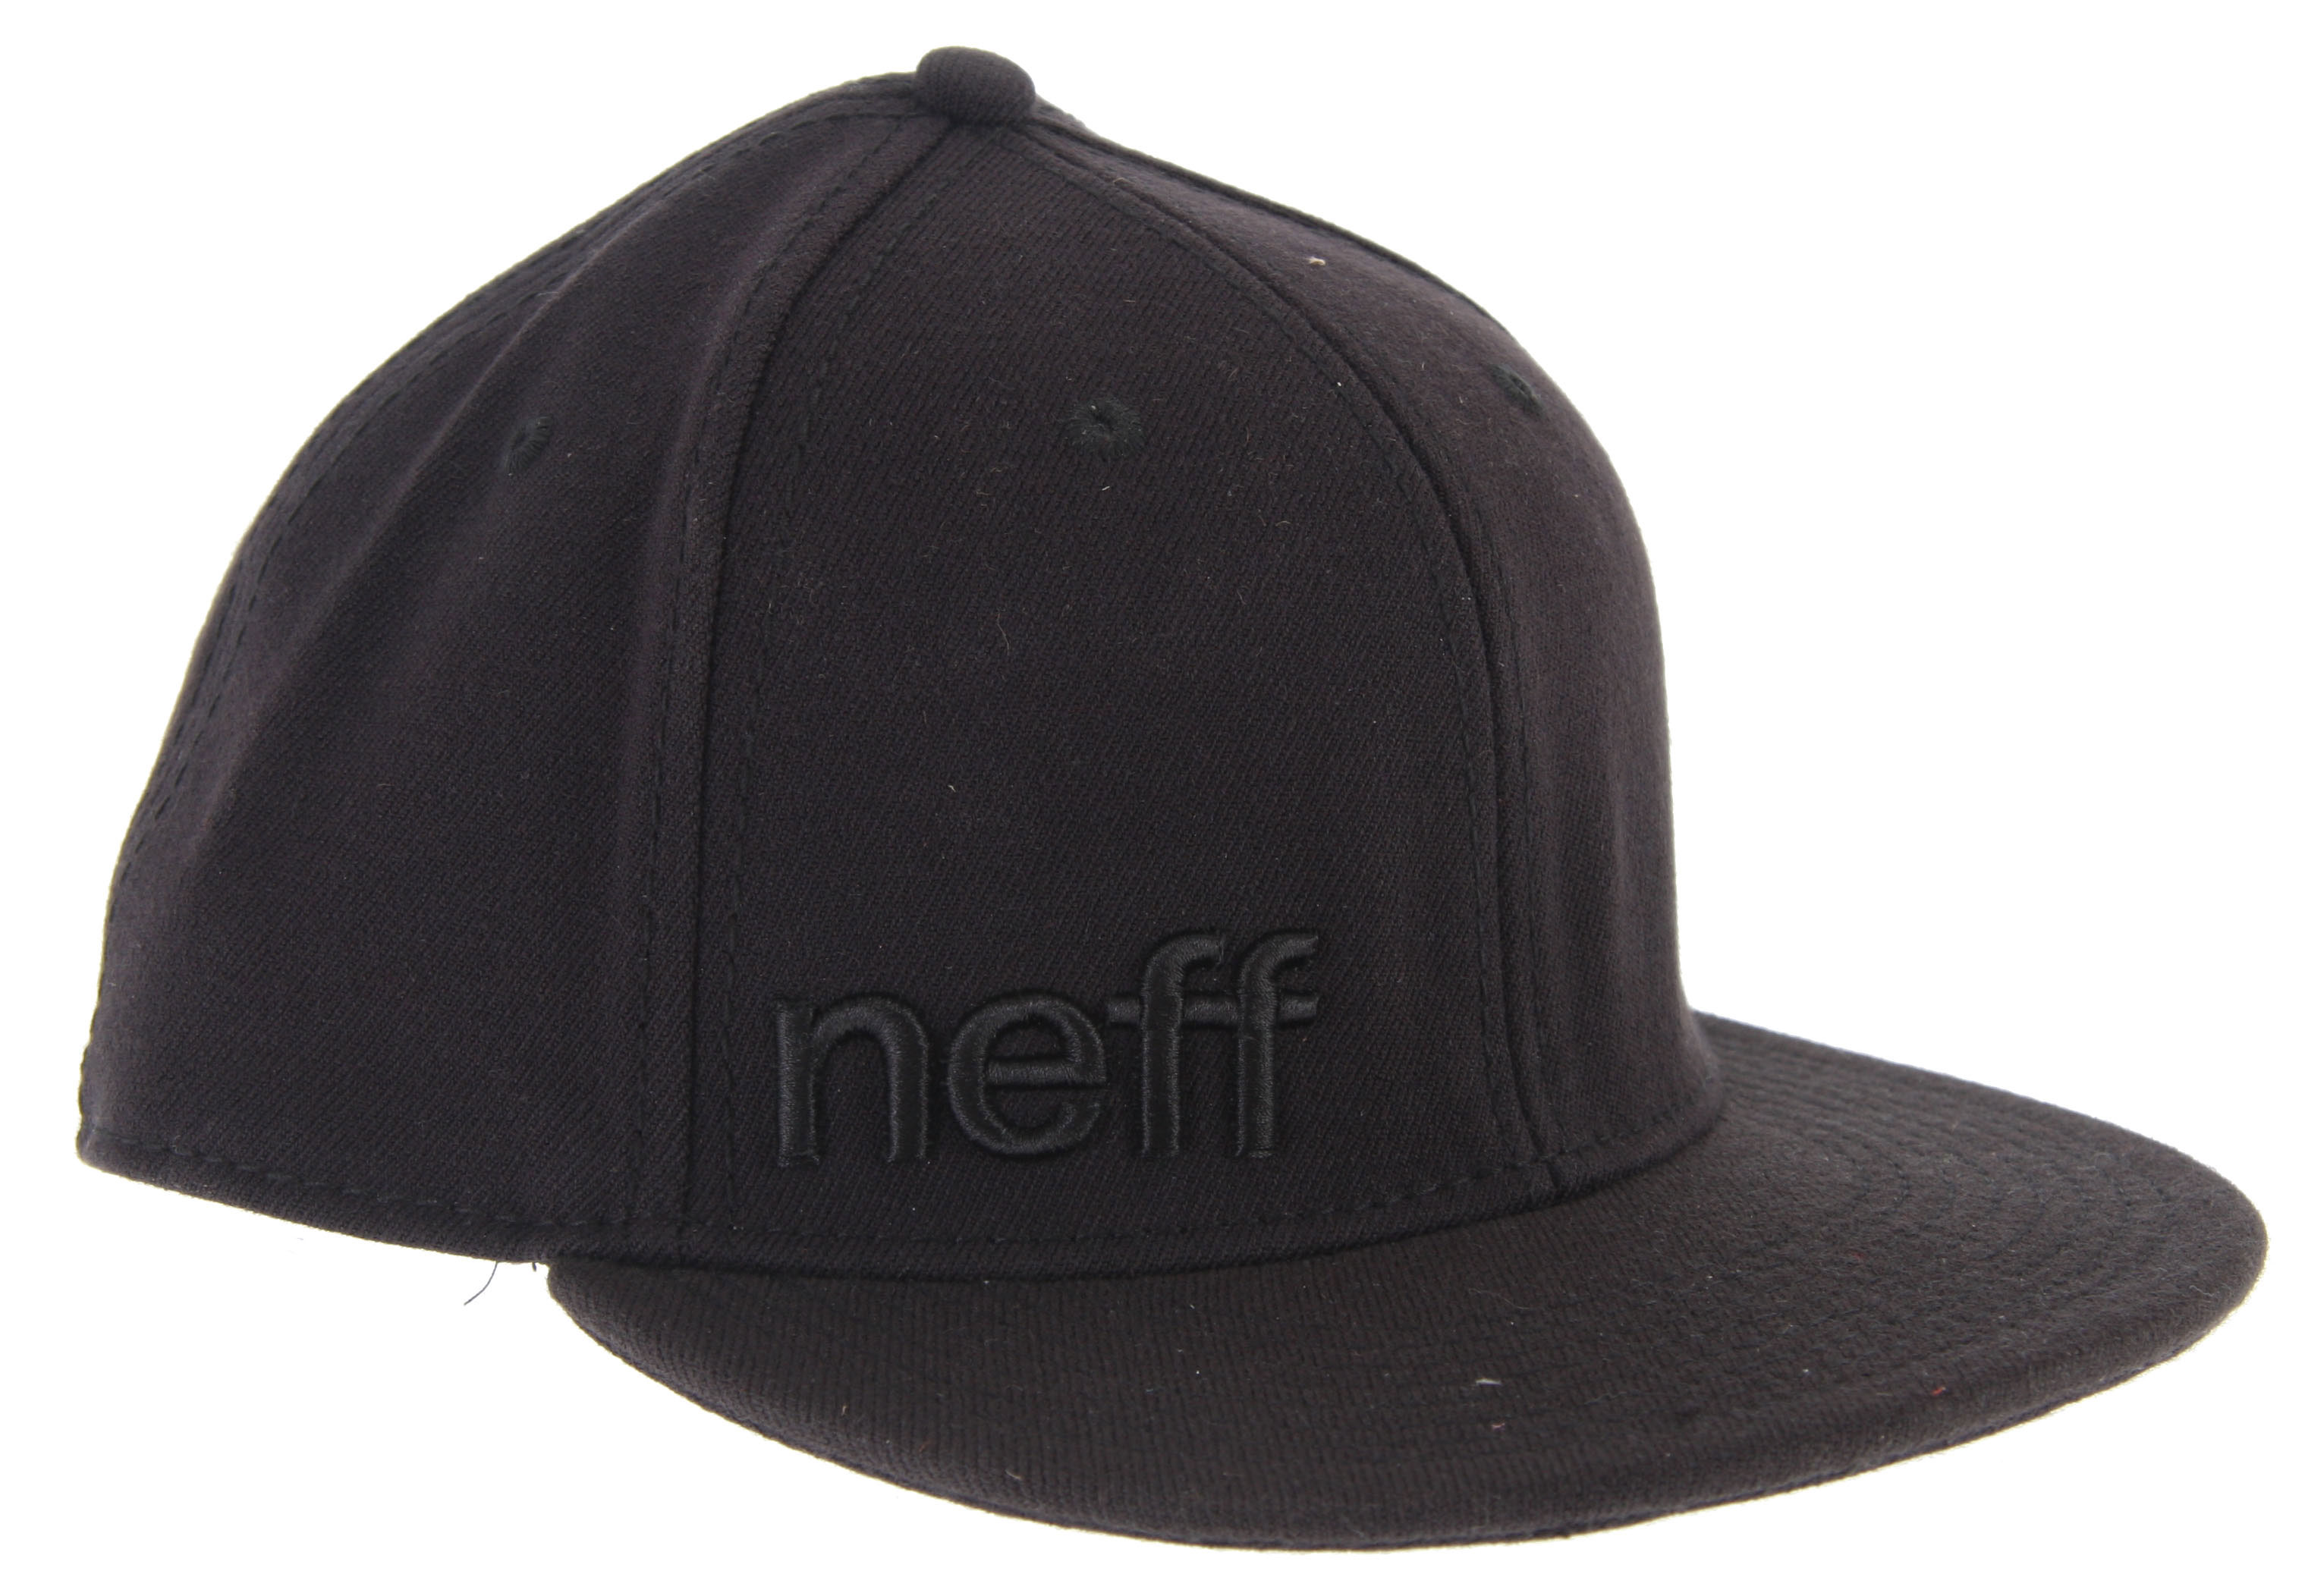 Skateboard Key Features of the Neff Daily Cap: Flat brimmed hat Off-center Neff embroidery Adjustable snapback closure 80% acrylic, 20% wool - $12.95